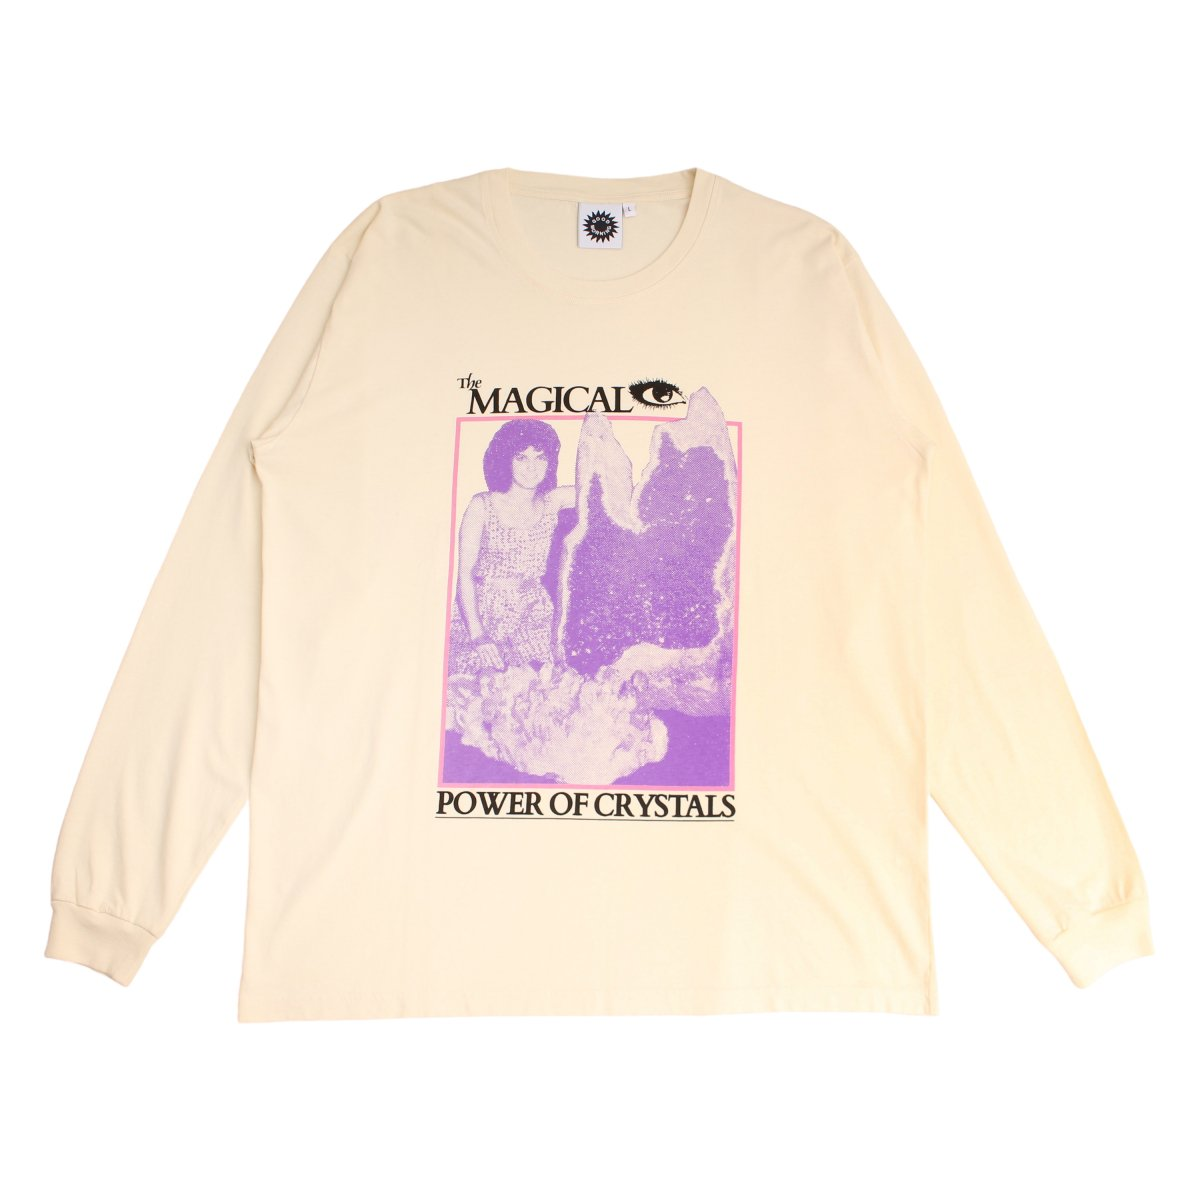 THE MAGICAL POWER OF CRYSTALS LS TEE